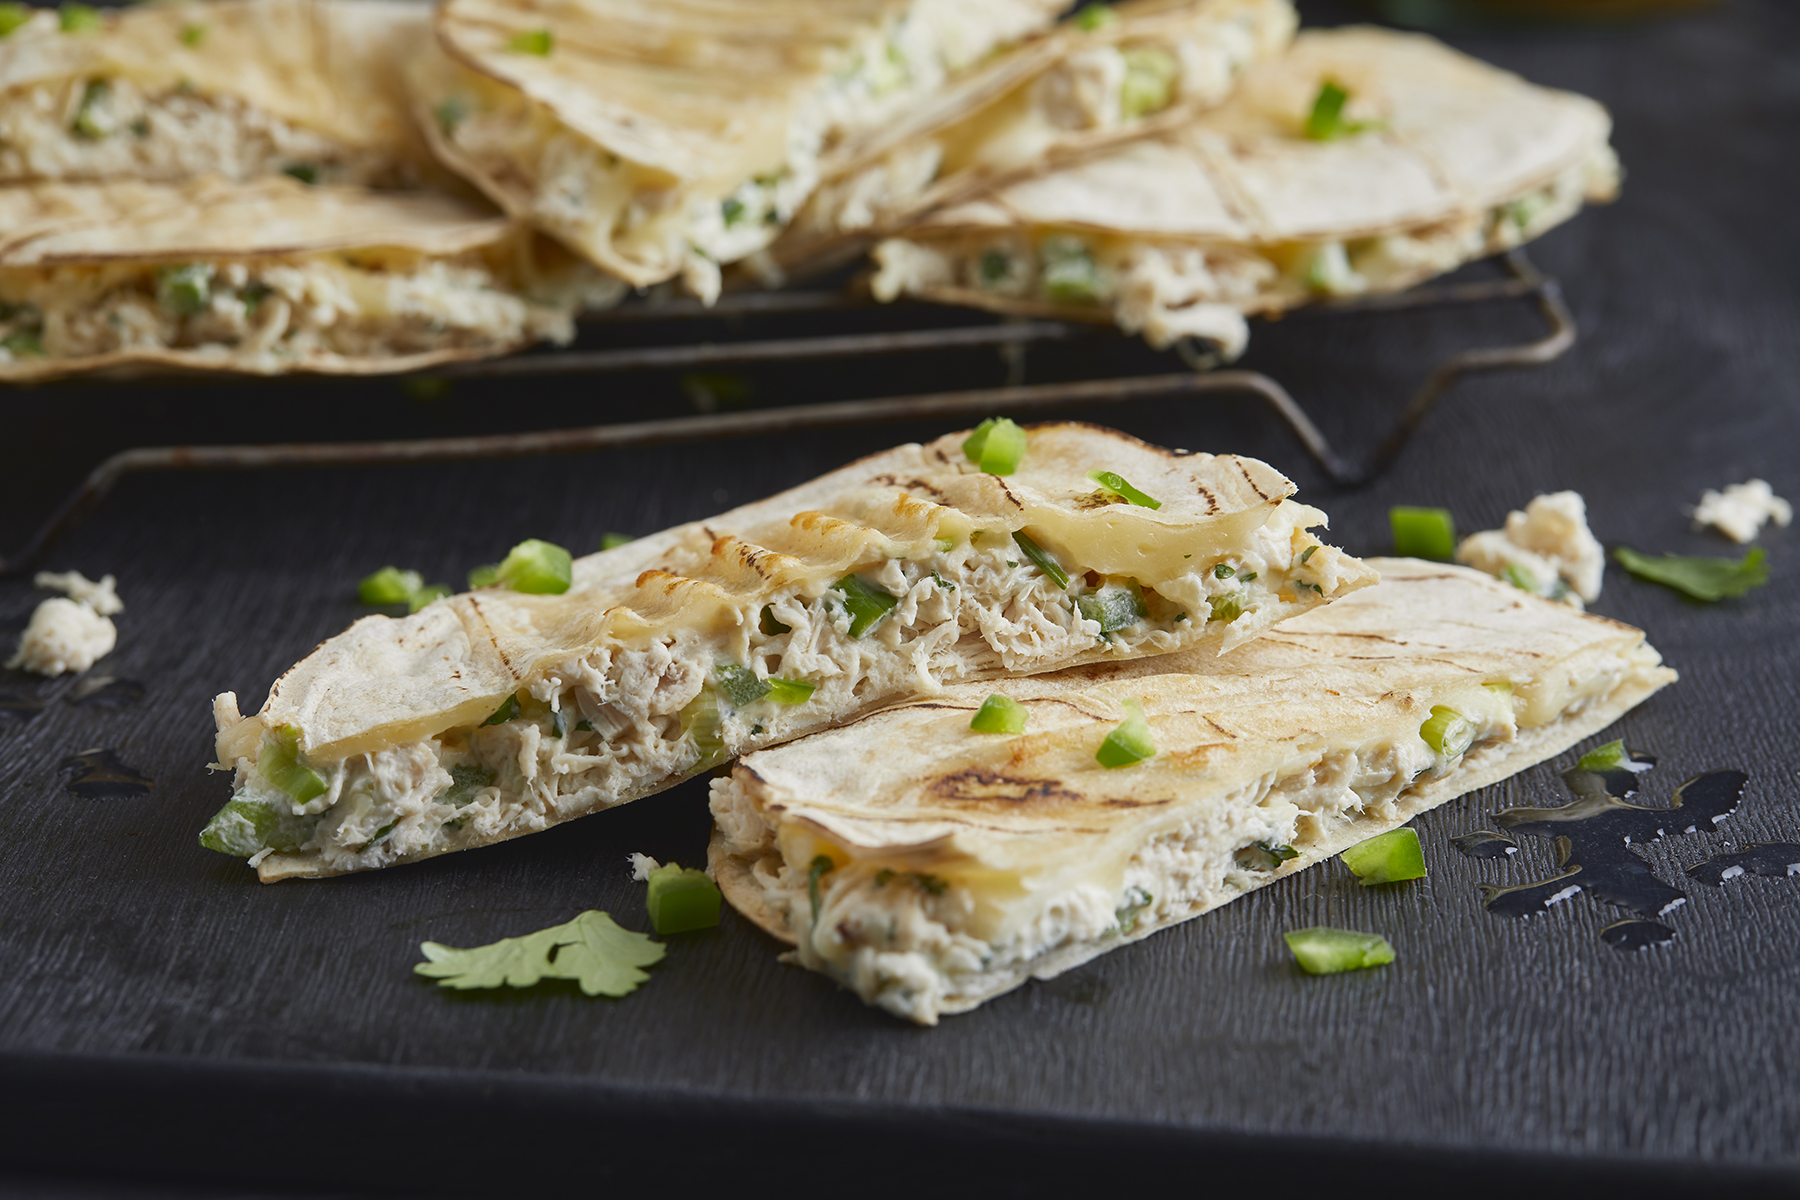 GRILLED CHICKEN LIME & CHEESE QUESADILLAS